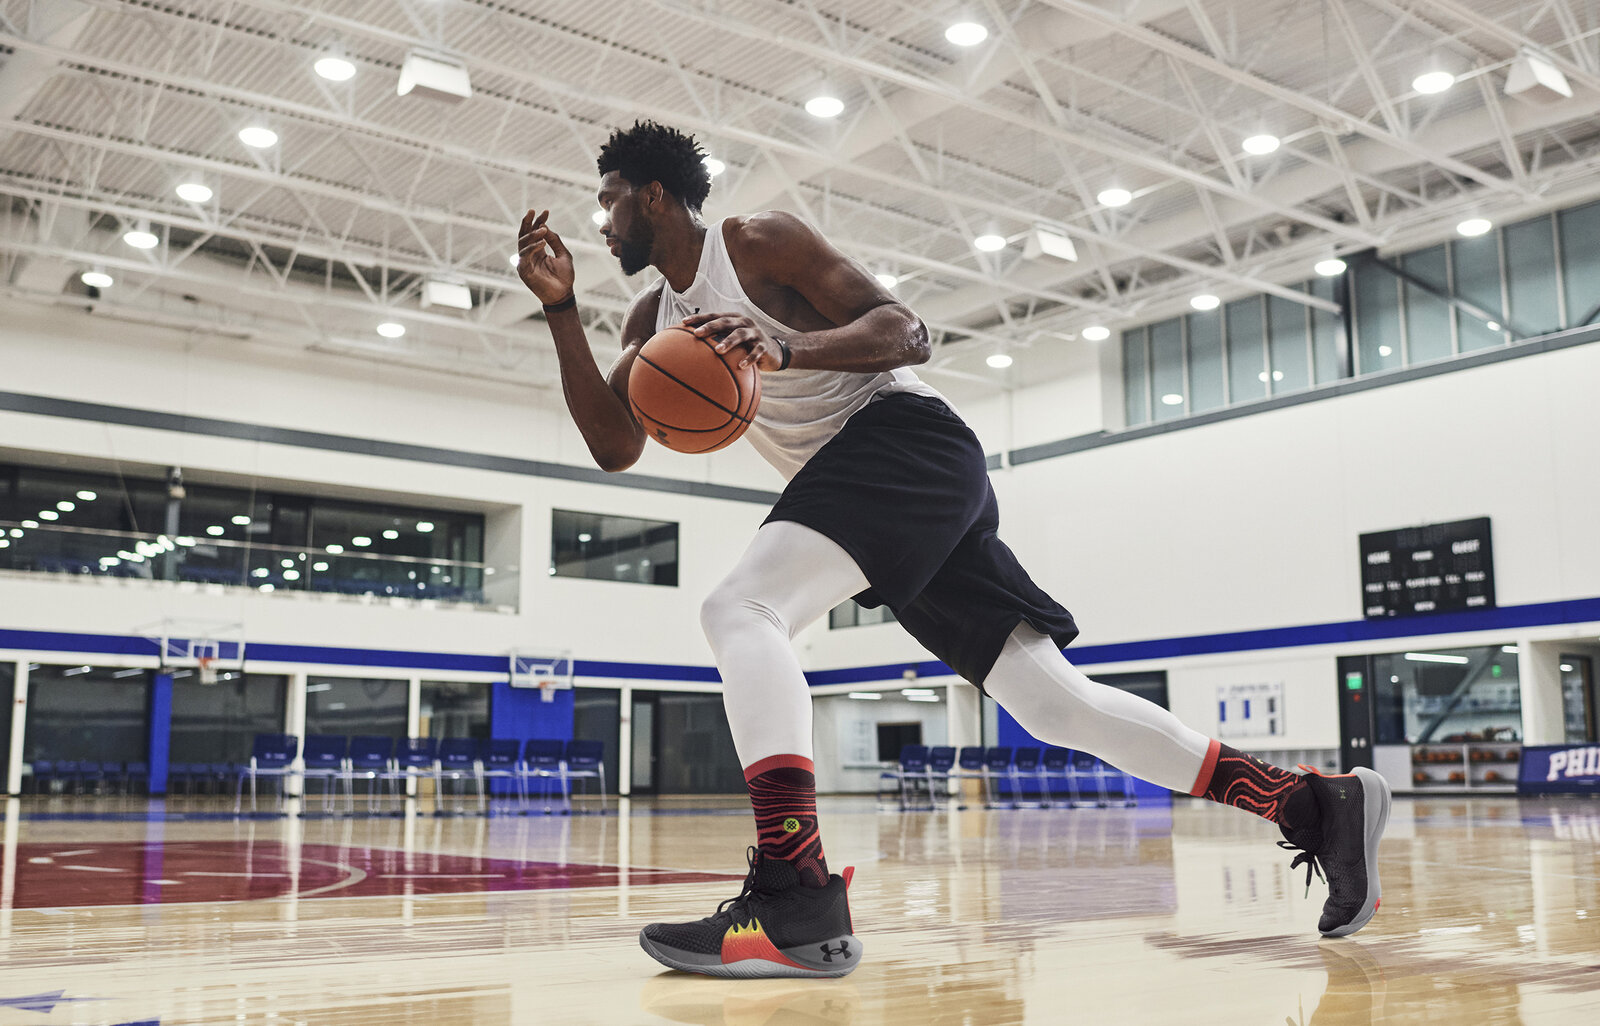 SOURCE SPORTS: Joel Embiid Reveals His First Signature Sneaker with Under Armour